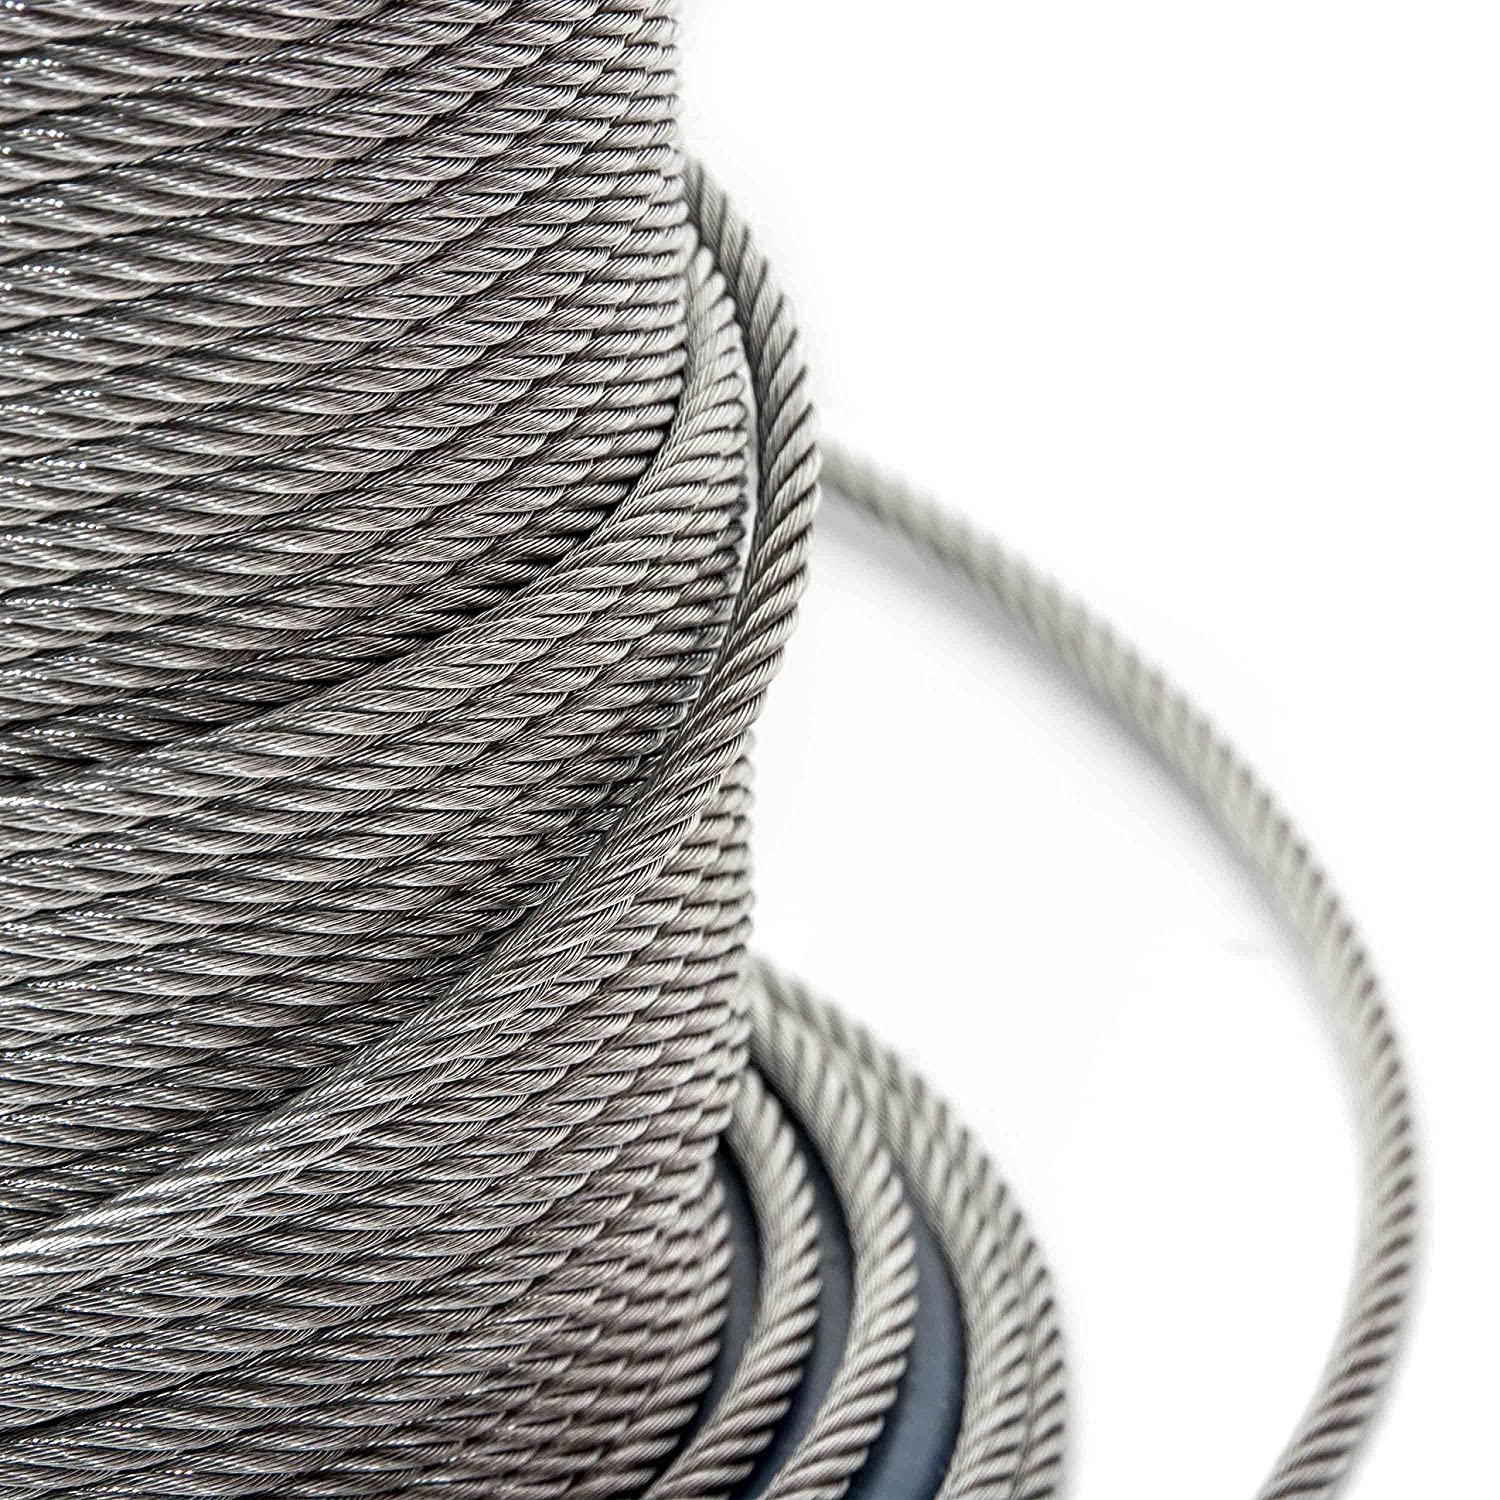 ALEKO WR3//16G7X19F500 3//16 Inch Diameter 7 x 19 Strand Galvanized Aircraft Steel Cable Wire Rope 500 Feet